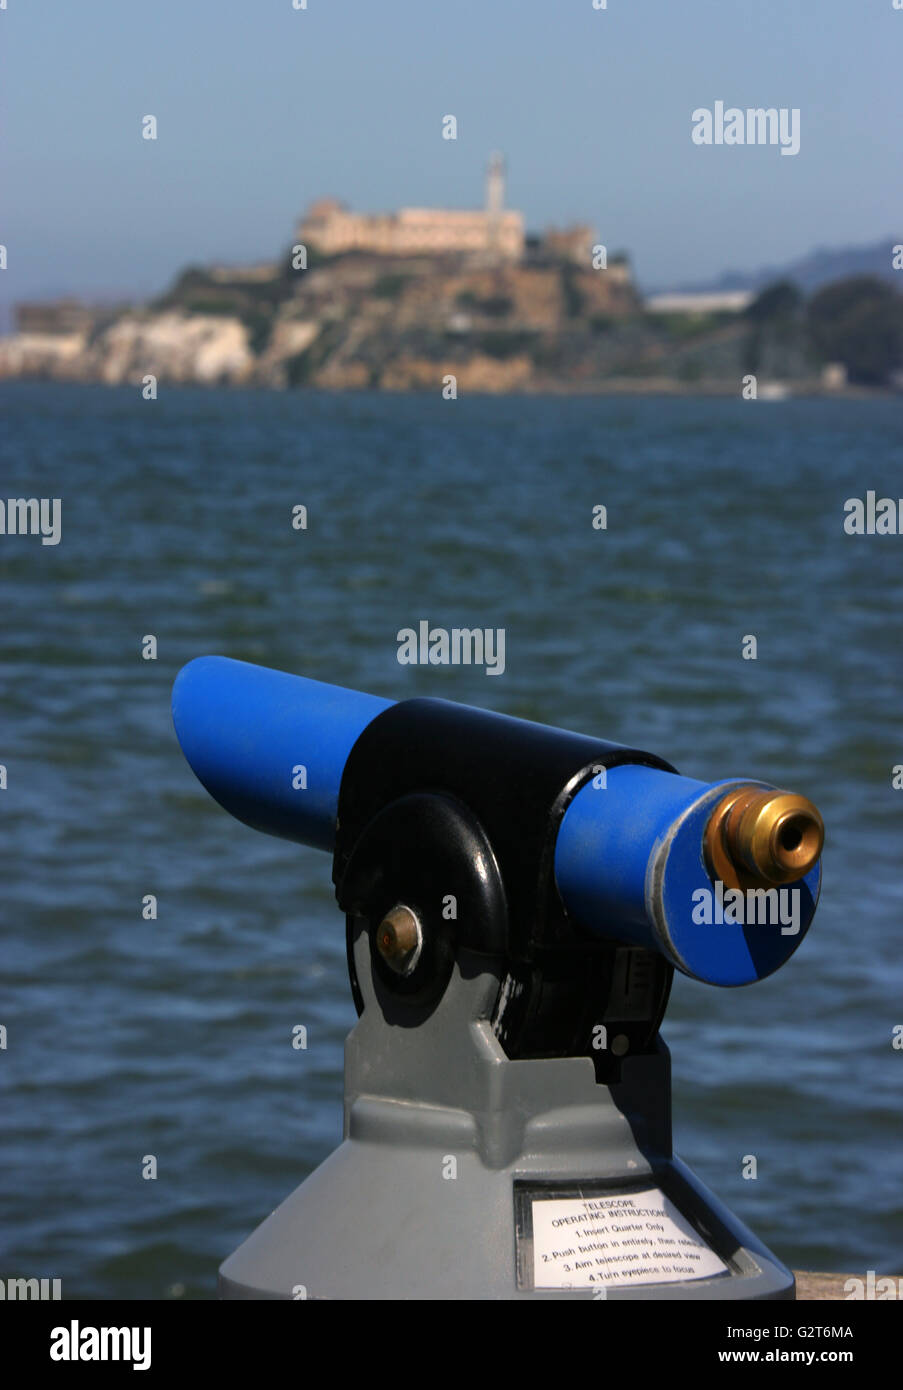 A view-scope telescope pointed at Alcatraz Island in San Francisco Bay California. - Stock Image